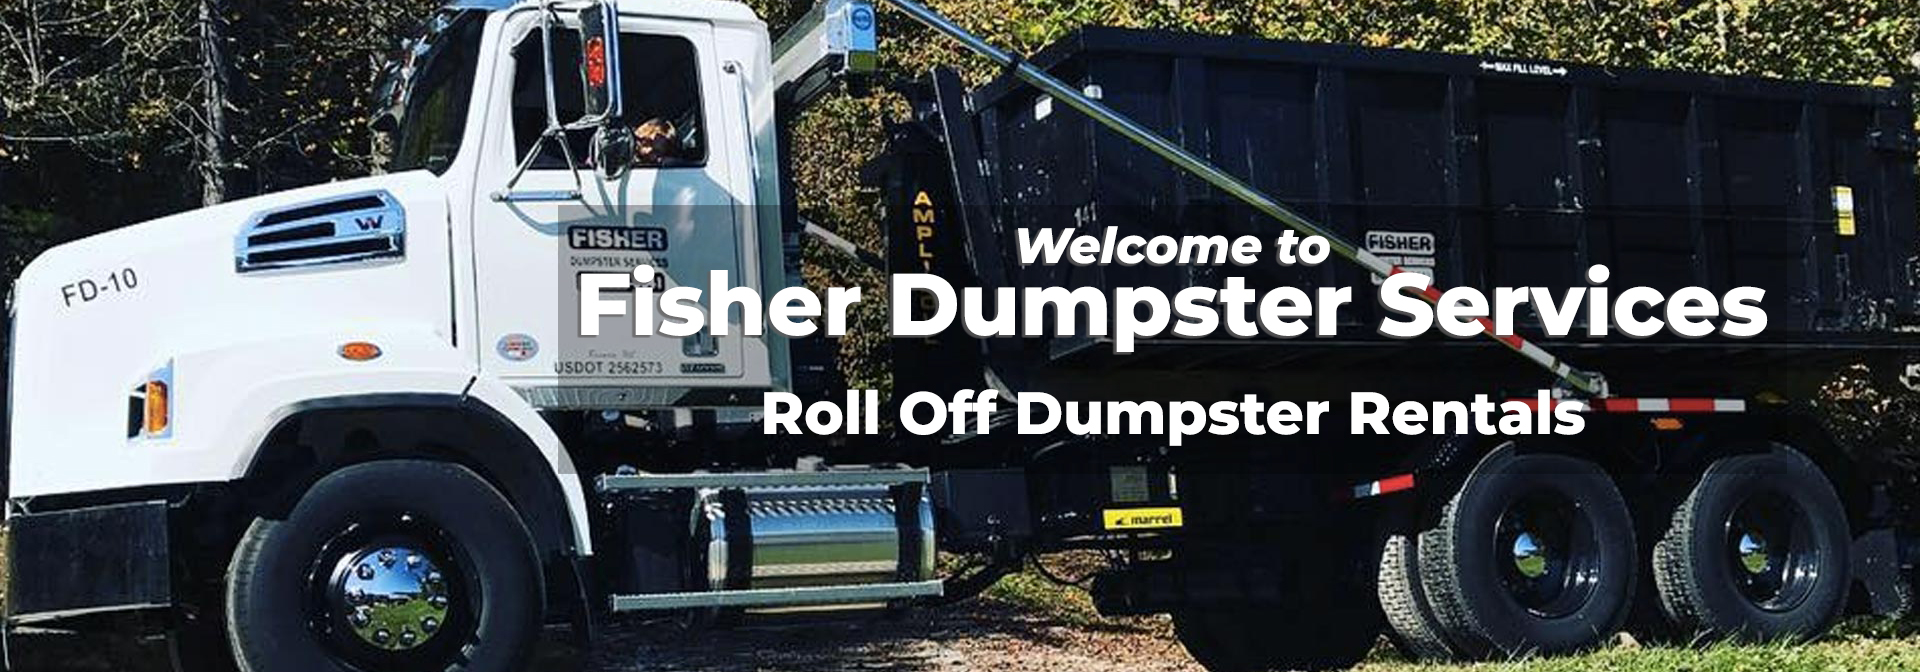 Fisher Dumpster Services